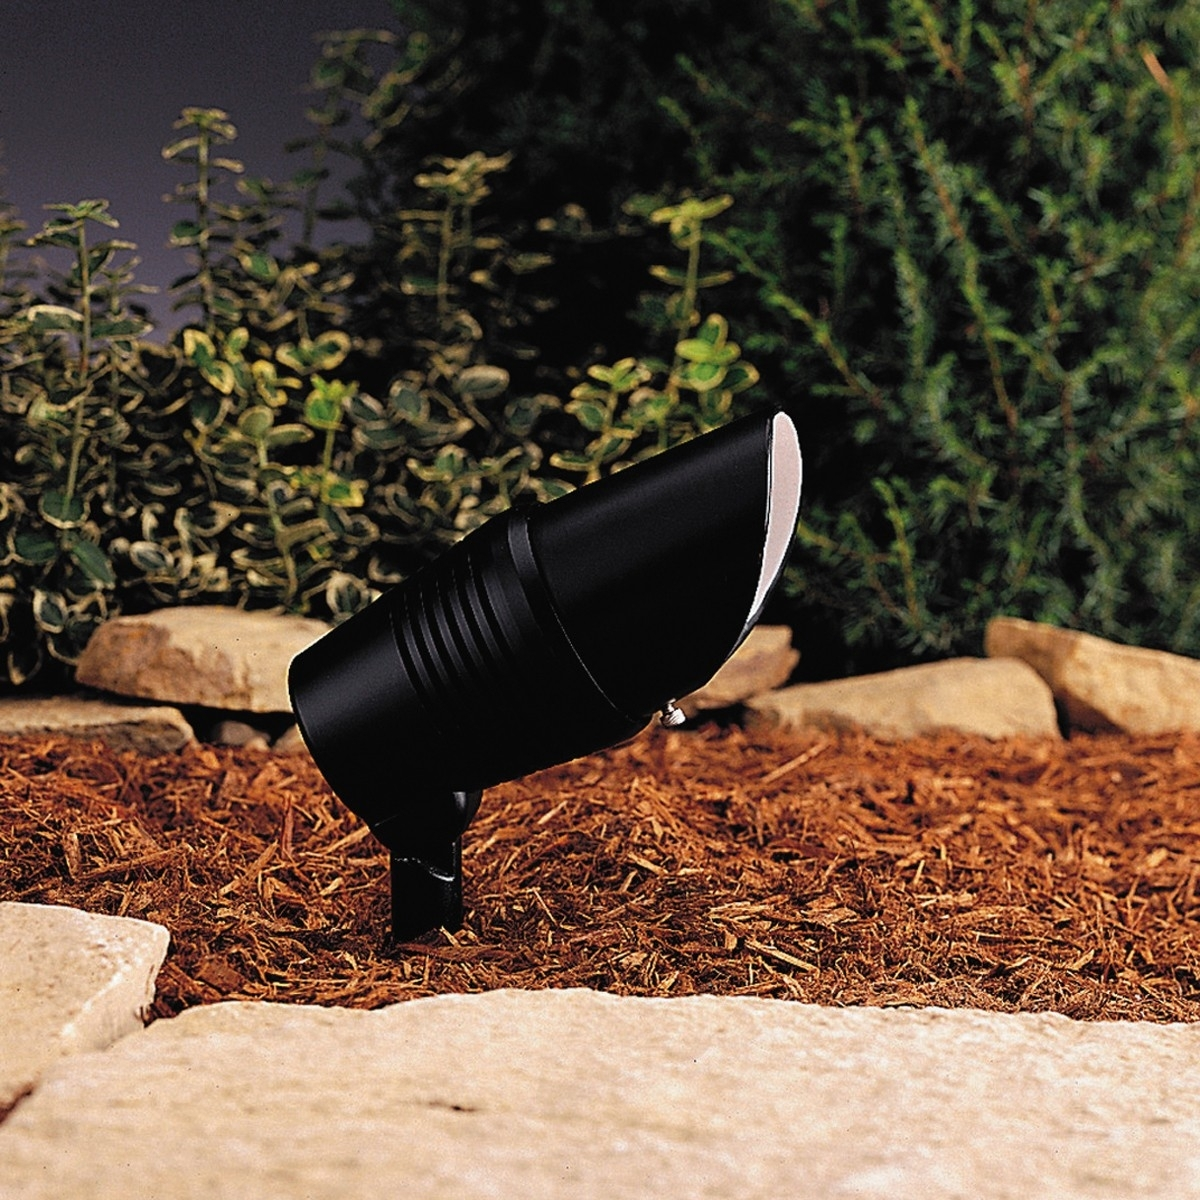 Low Voltage Landscape Spot Light Outdoor Landscape Spotlights Intended For Landscape Spotlights Wonderful Landscape Spotlights At Night